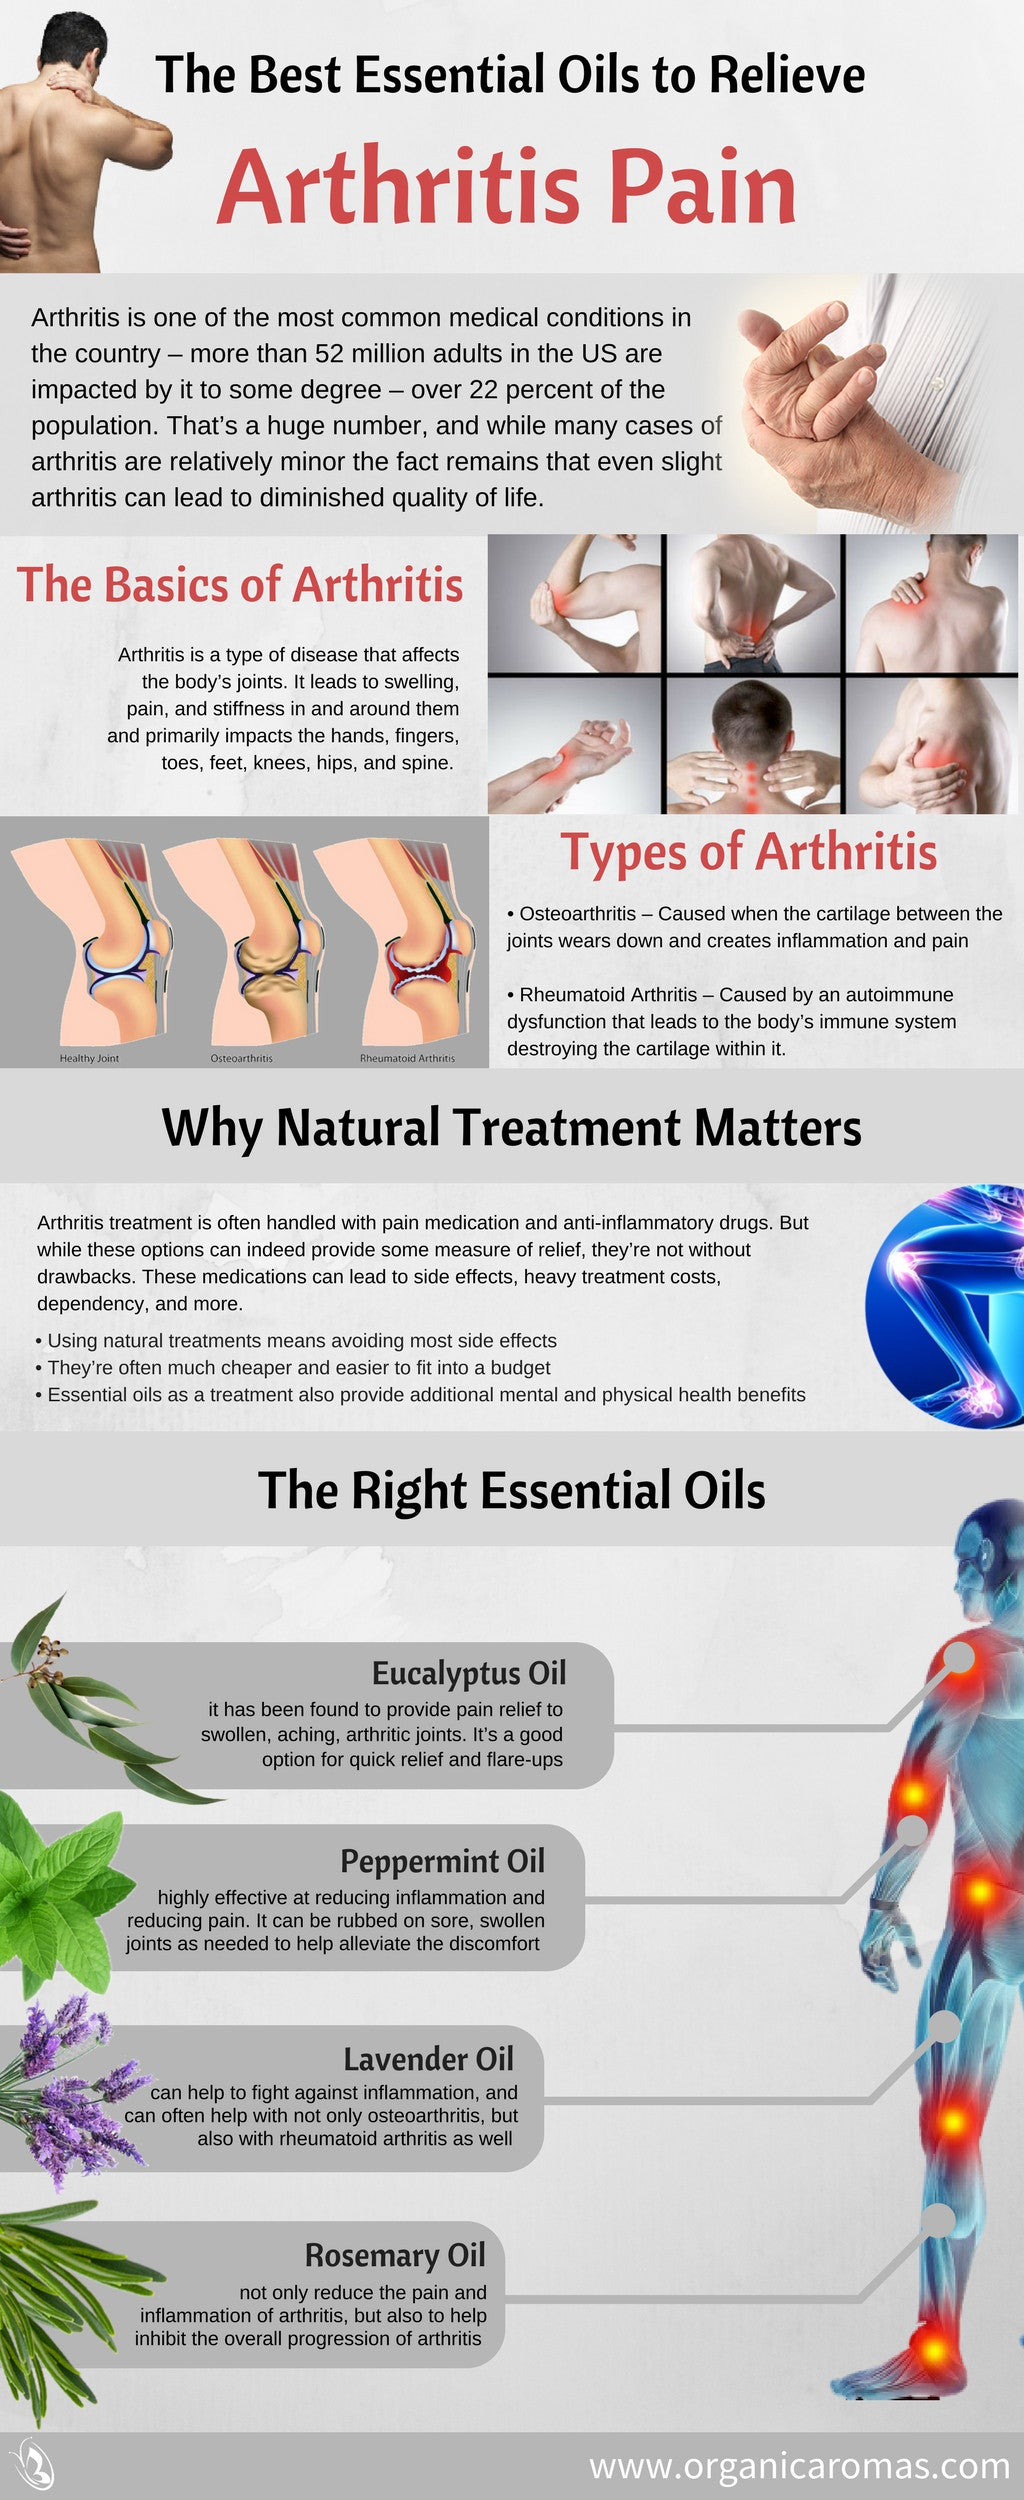 The Best Essential Oils To Relieve Arthritis Pain Organic Aromas